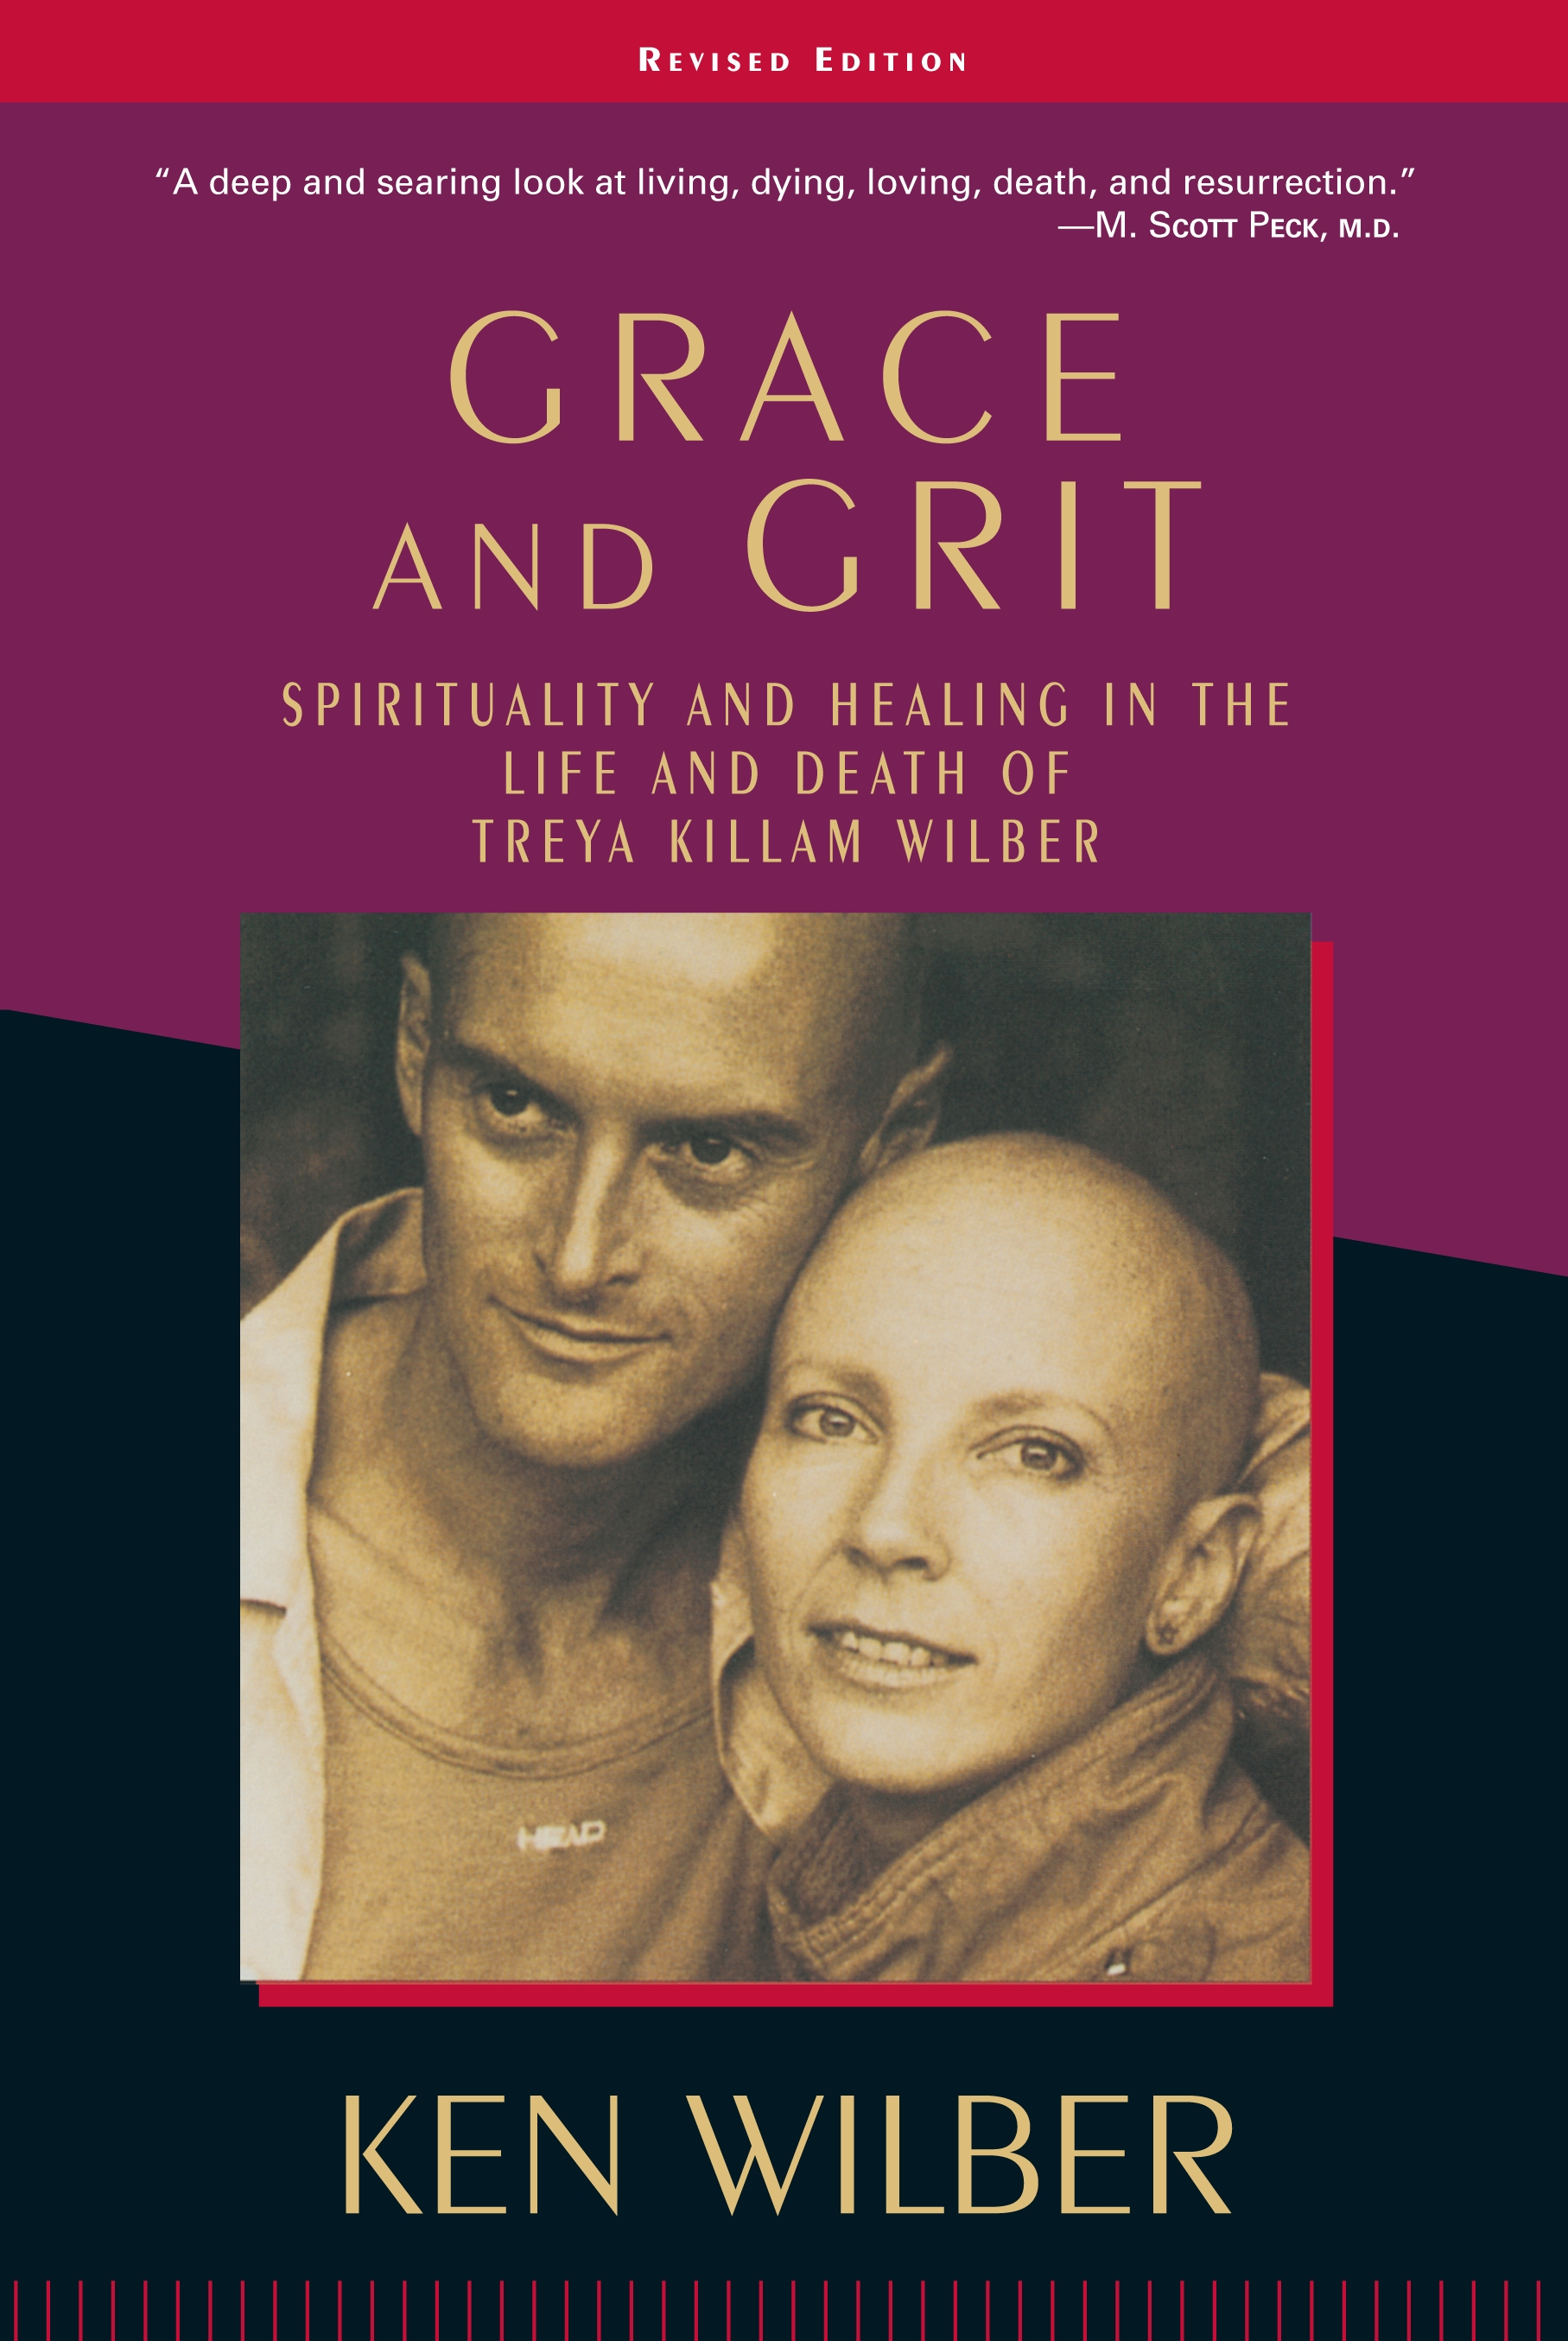 Grace and Grit: Spirituality and Healing in the Life and Death of Treya Killam Wilber By: Ken Wilber